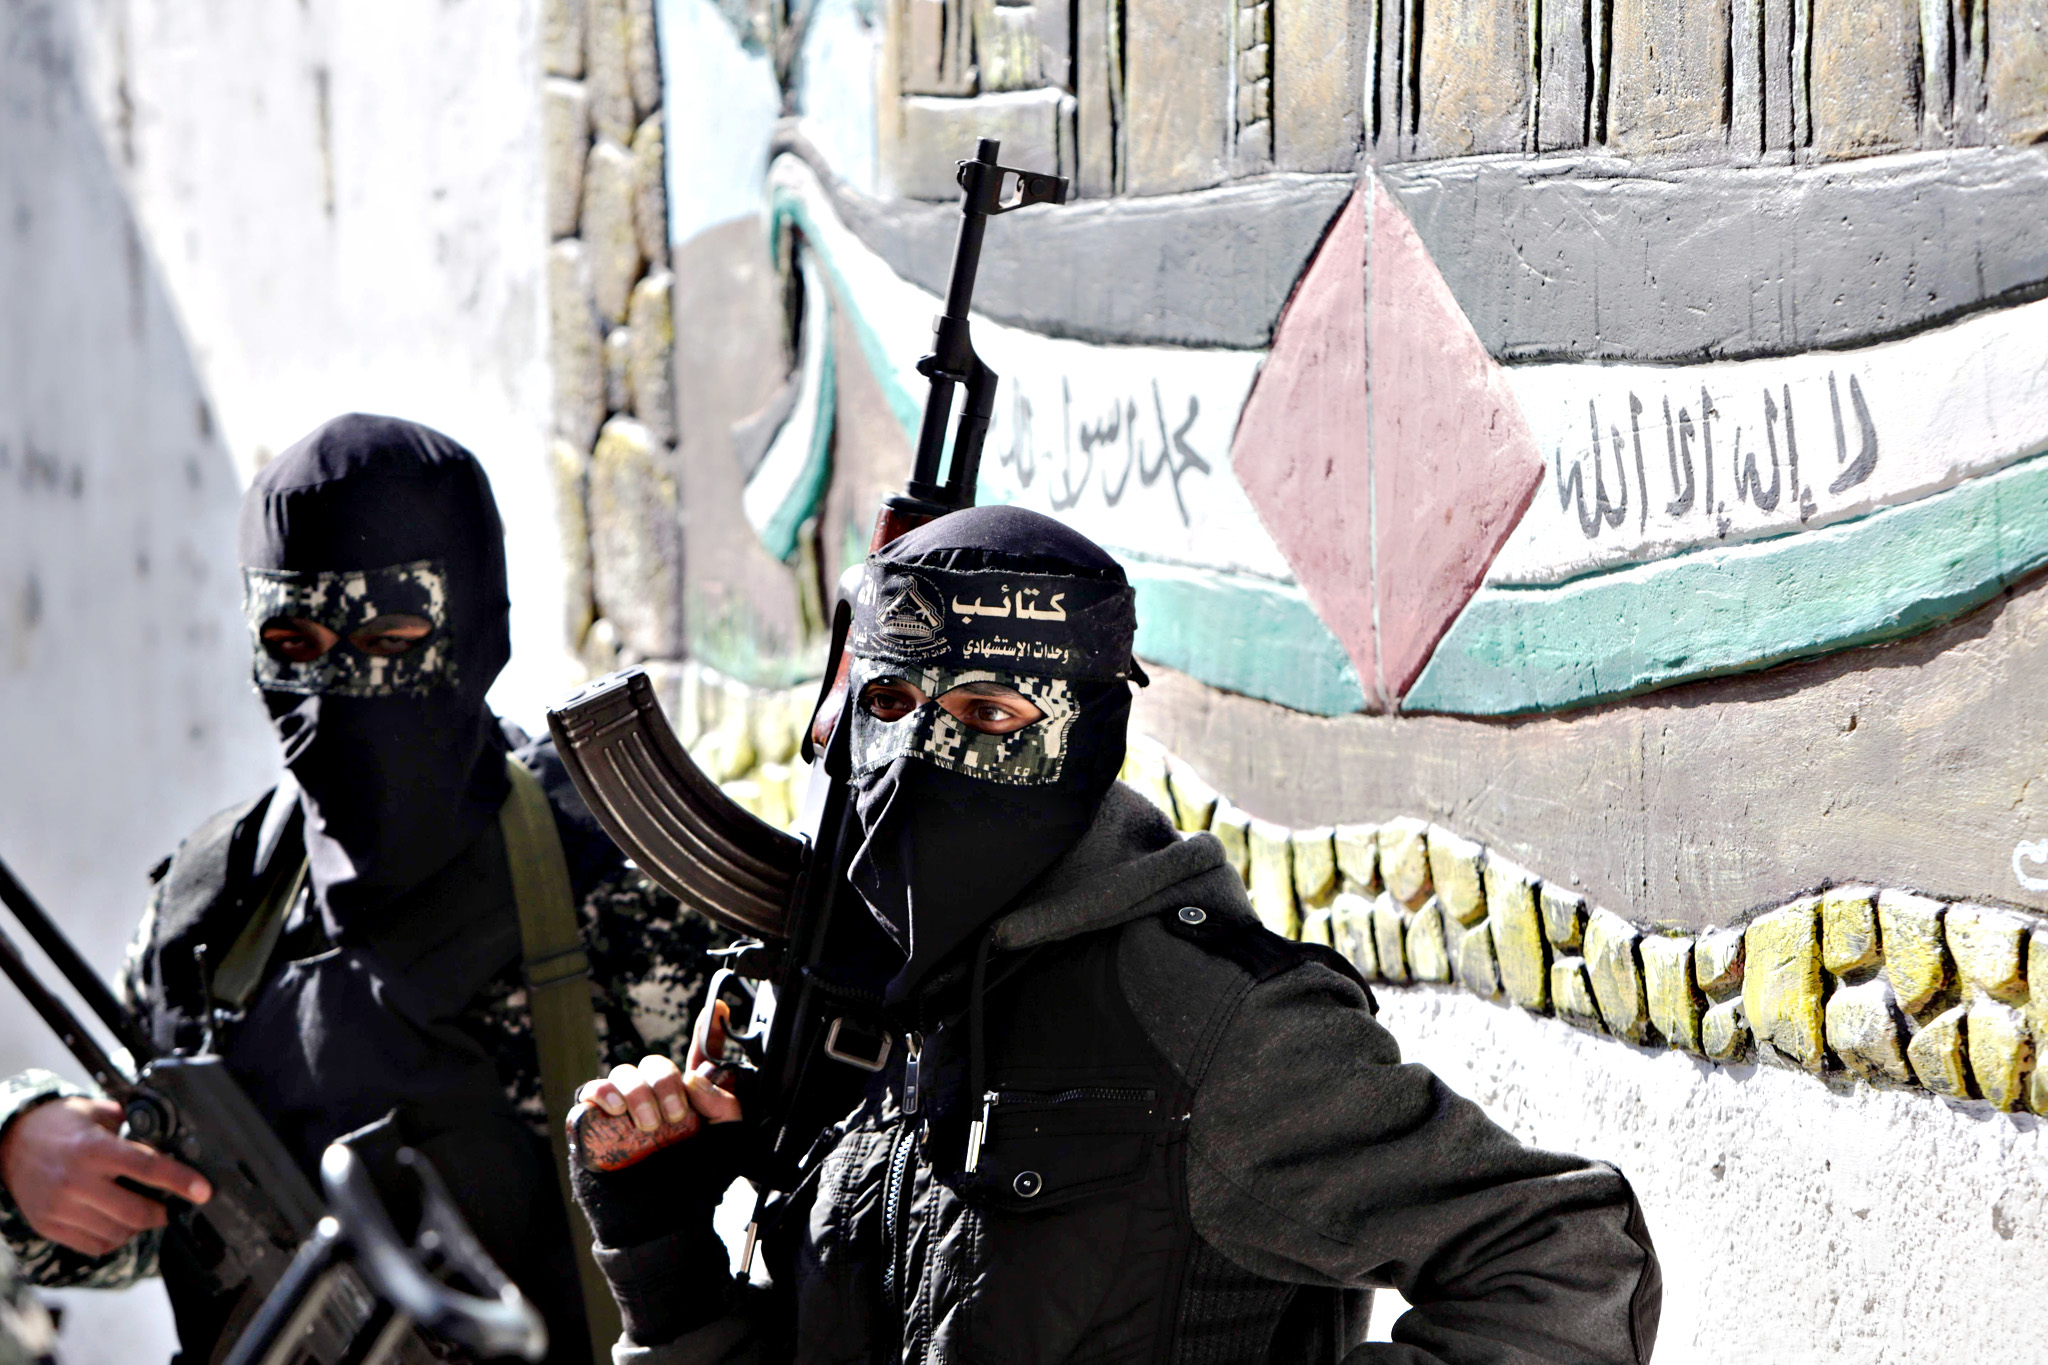 Masked Palestinian militants from the al-Aqsa Martyrs Brigades, a group linked to the Fatah movement, attend the funeral of Mussa Abu Zuaiter, a Palestinian man who was killed in an Israeli air strike on the Gaza Strip, in the Jabalia refugee camp in the northern Gaza Strip on Wednesday.  An Israeli air raid in the northern Gaza Strip targeting alleged militants killed one Palestinian and wounded three others, the Israeli army and a Palestinian official said.